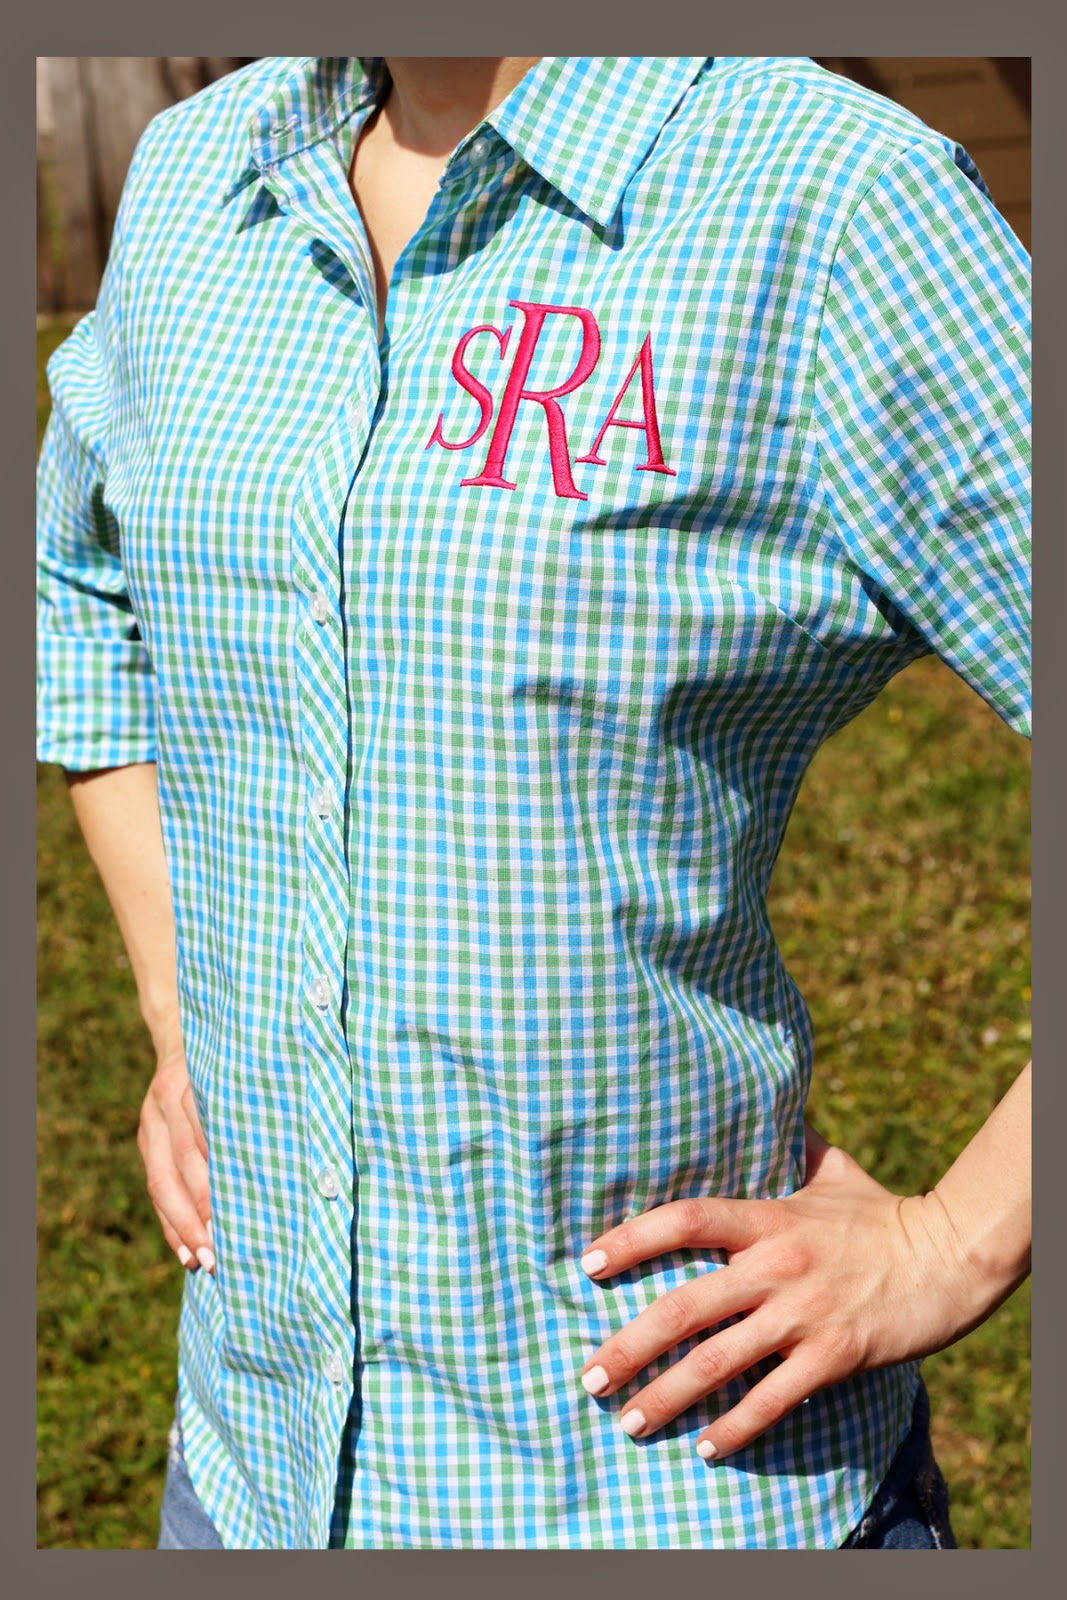 Tiny Tulip Monogrammed Gingham Shirt Giveaway Skinny Latte Mommy